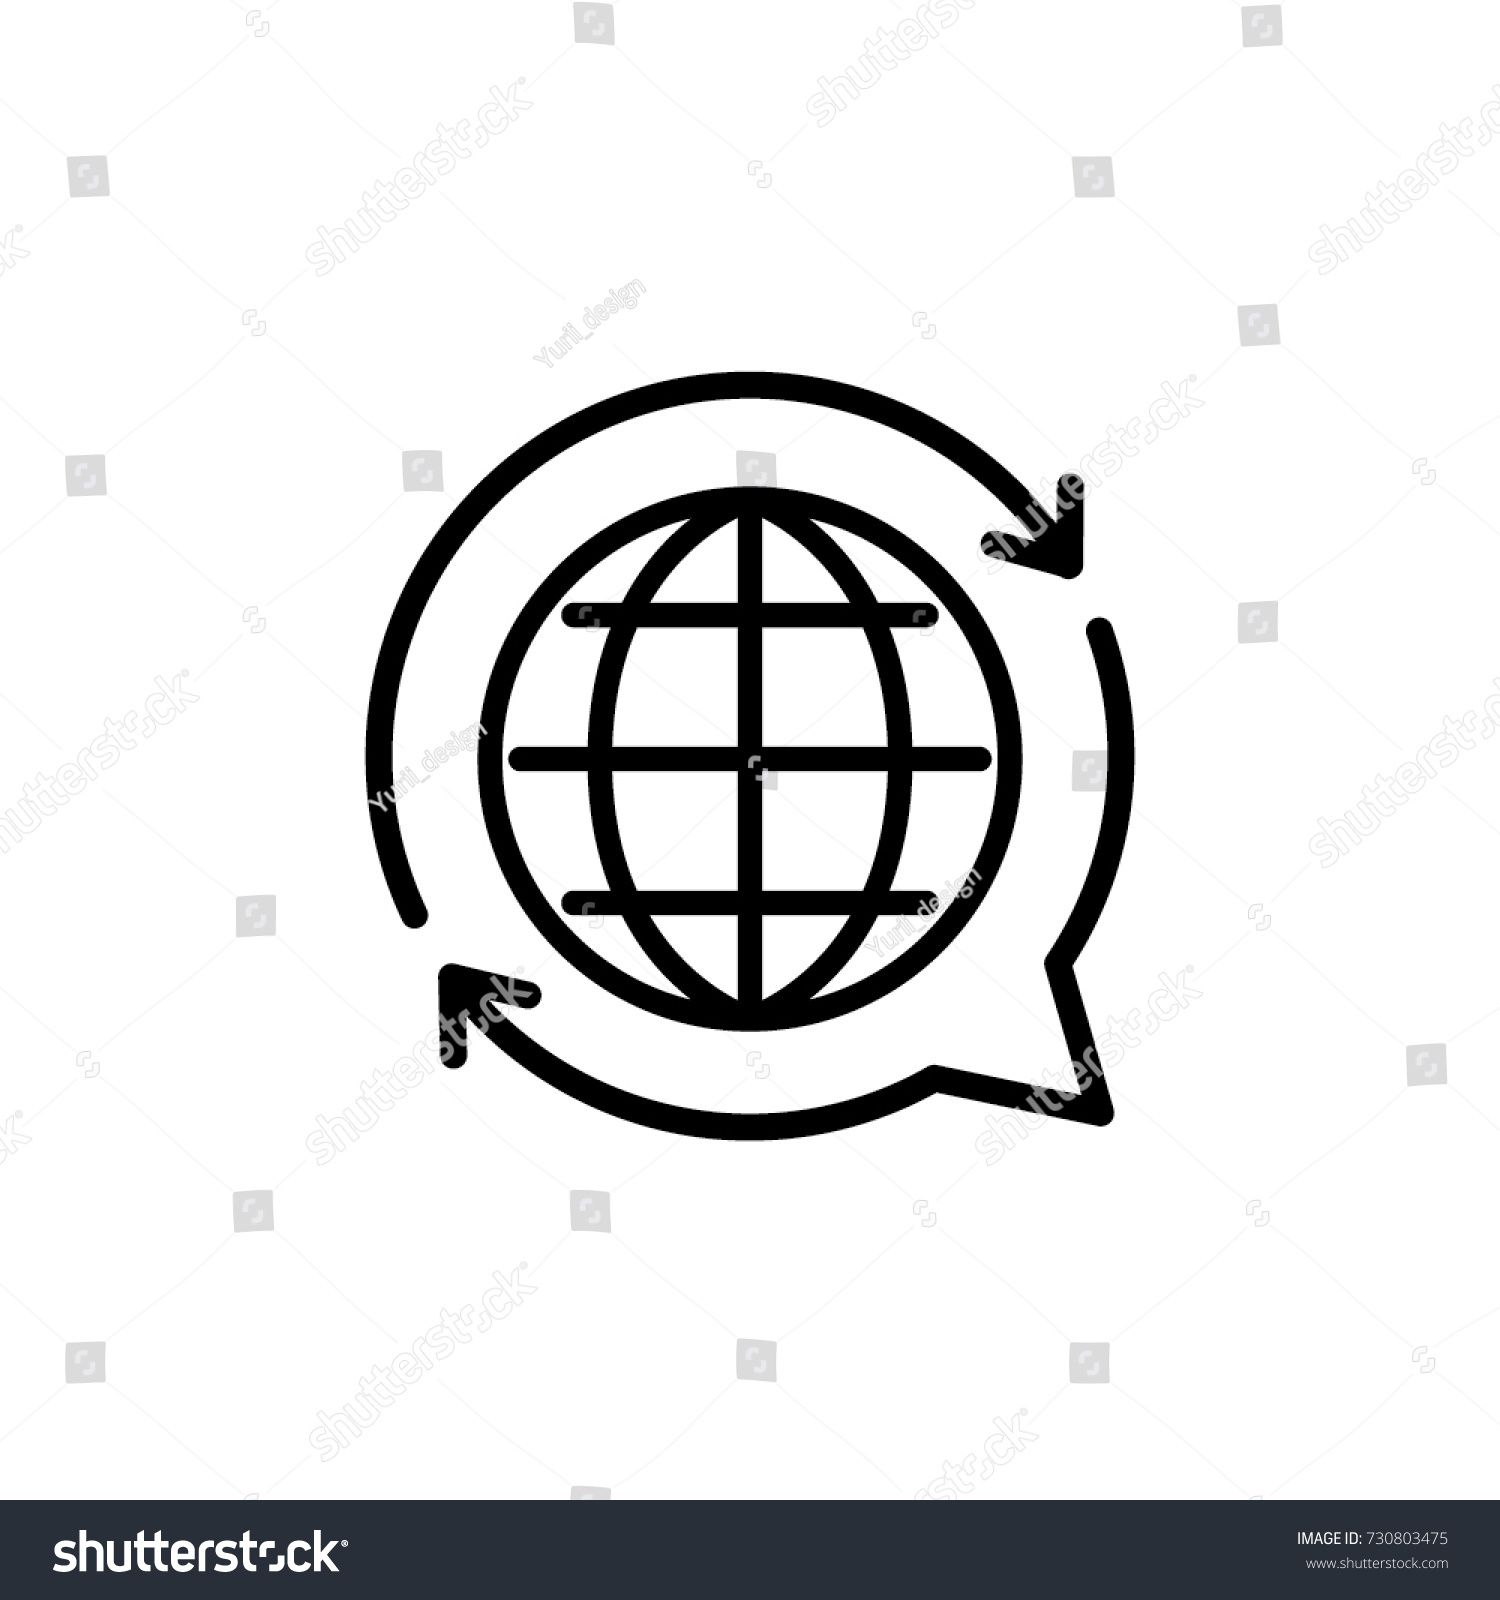 translate icon vector